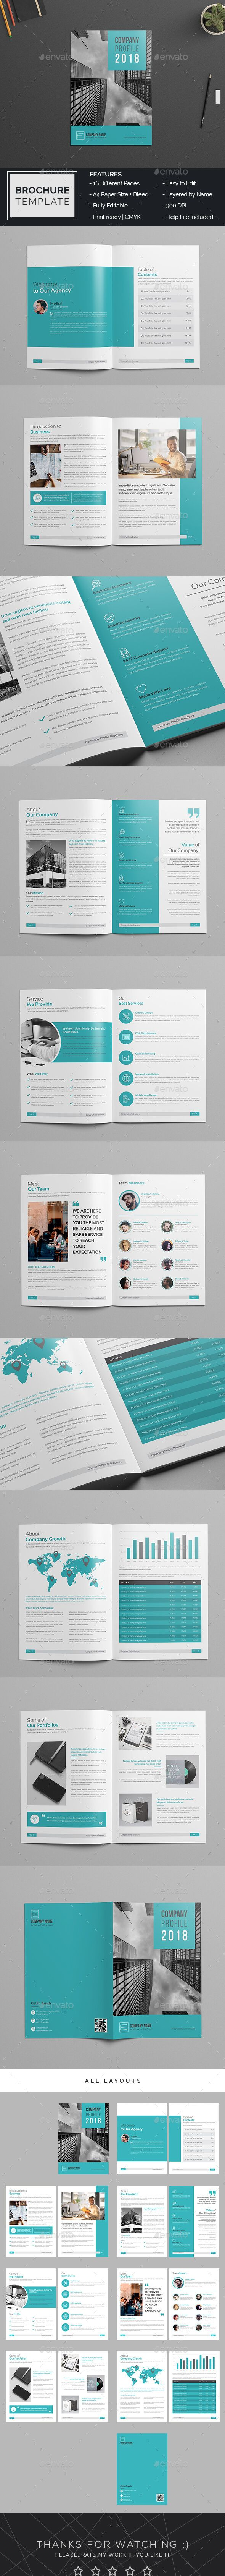 Company Profile Brochure Template Indesign Indd 16 Pages Company